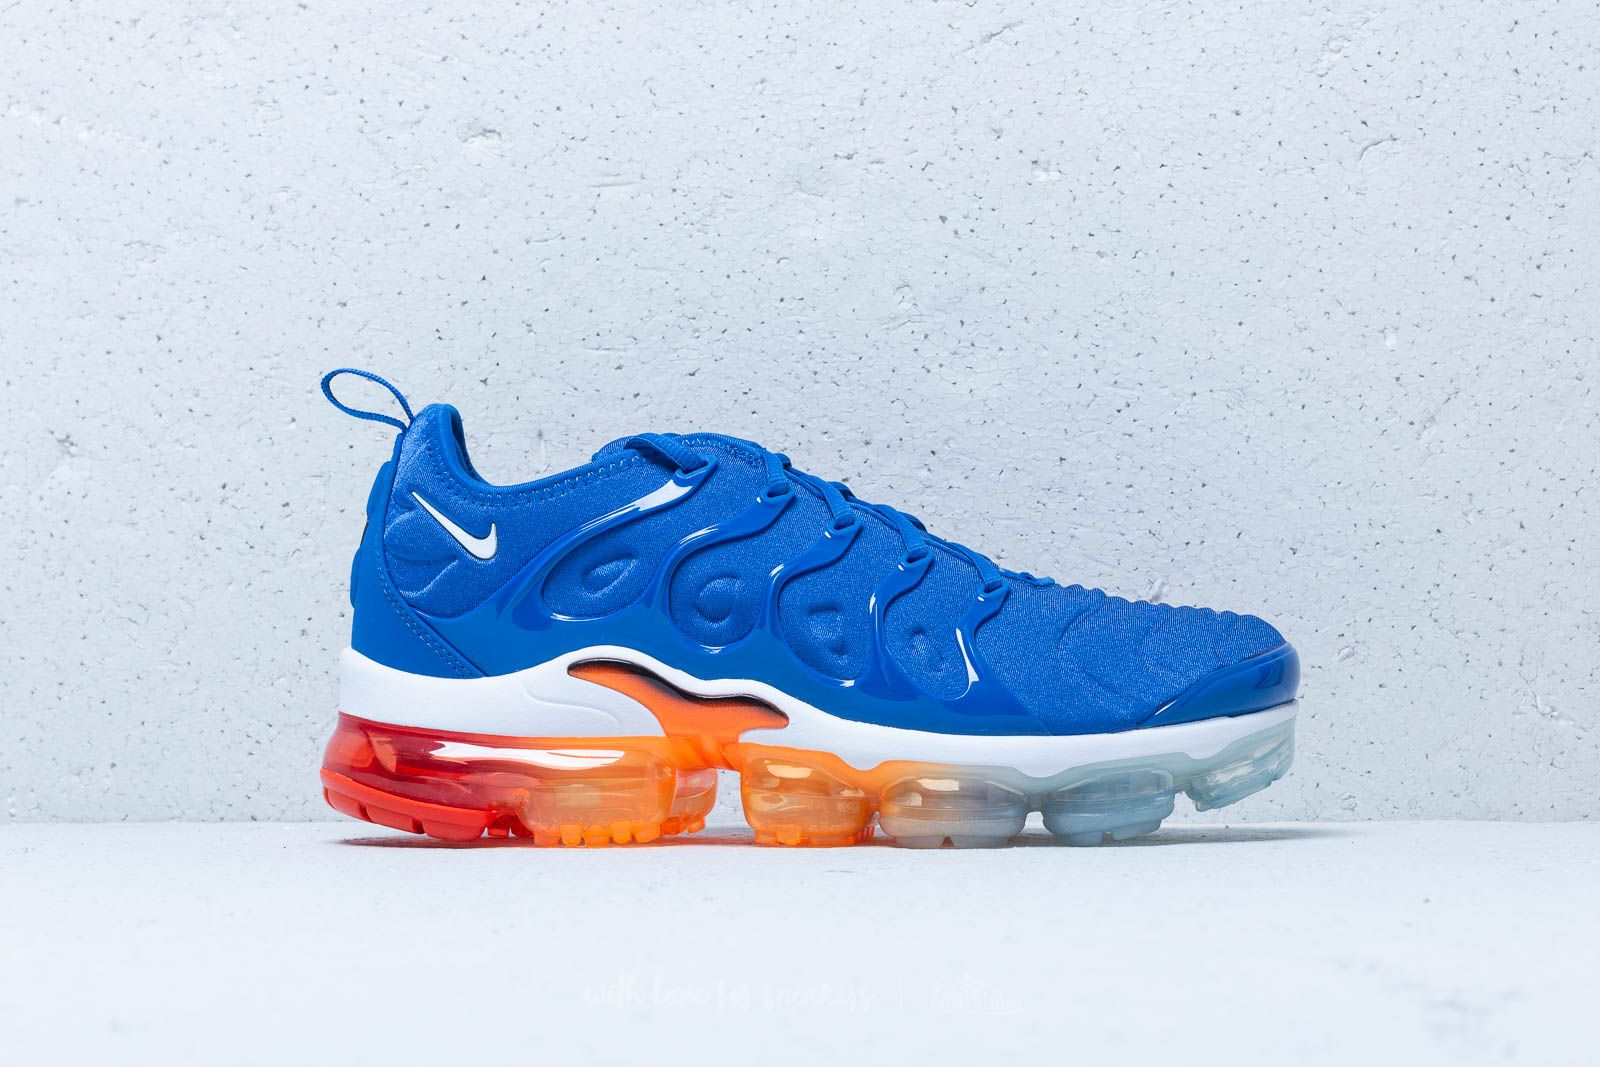 7a5a01c7131 Nike Air Vapormax Plus Game Royal  White-Black at a great price 209 €